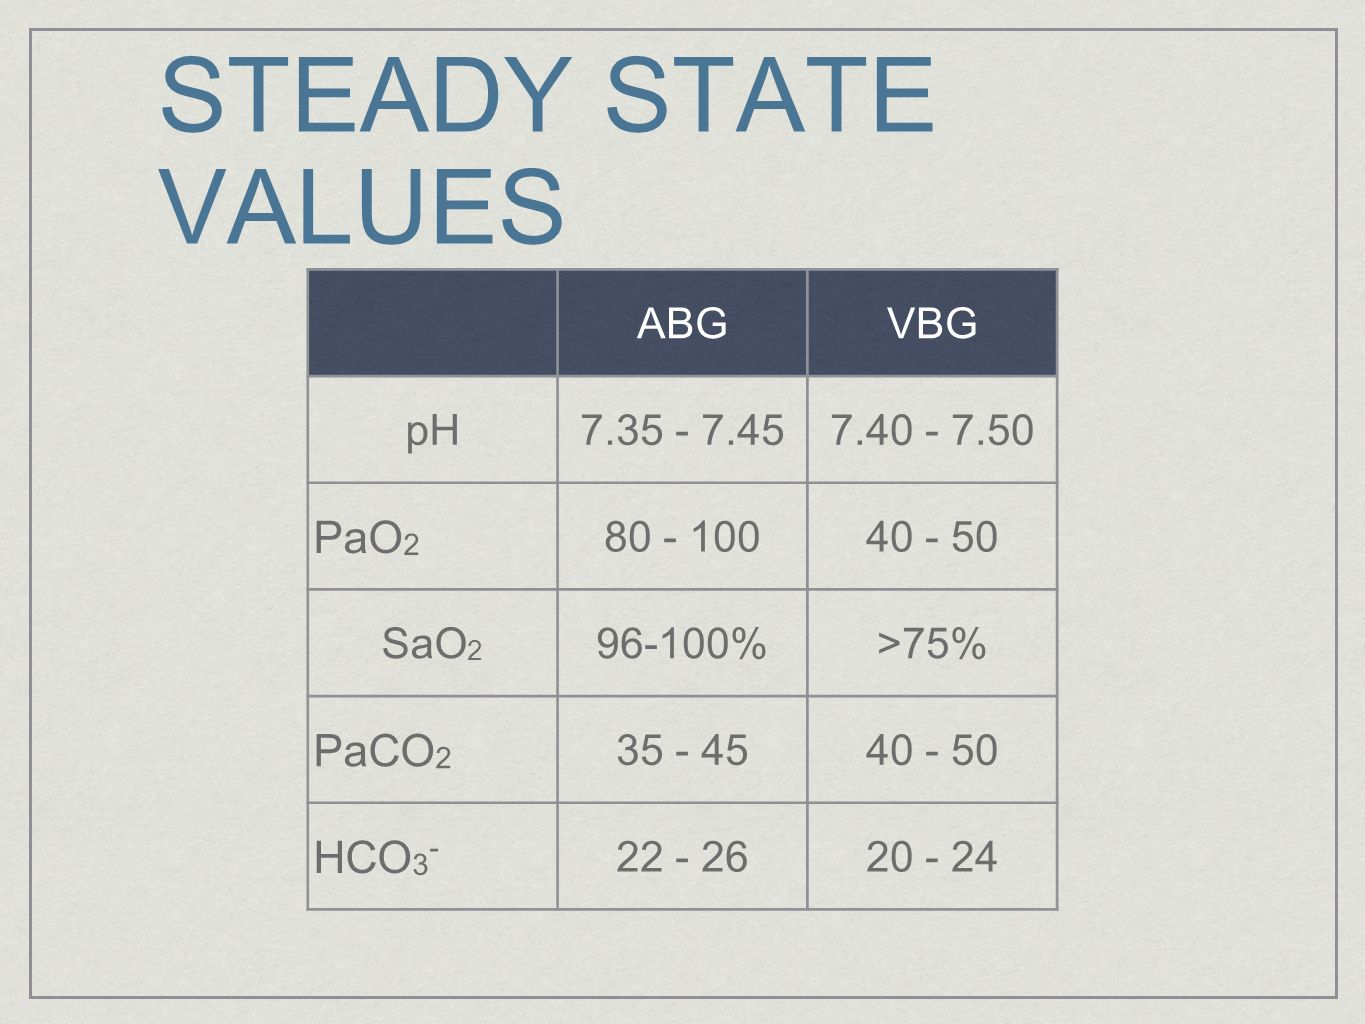 STEADY STATE VALUES PaO2 PaCO2 HCO3- ABG VBG pH